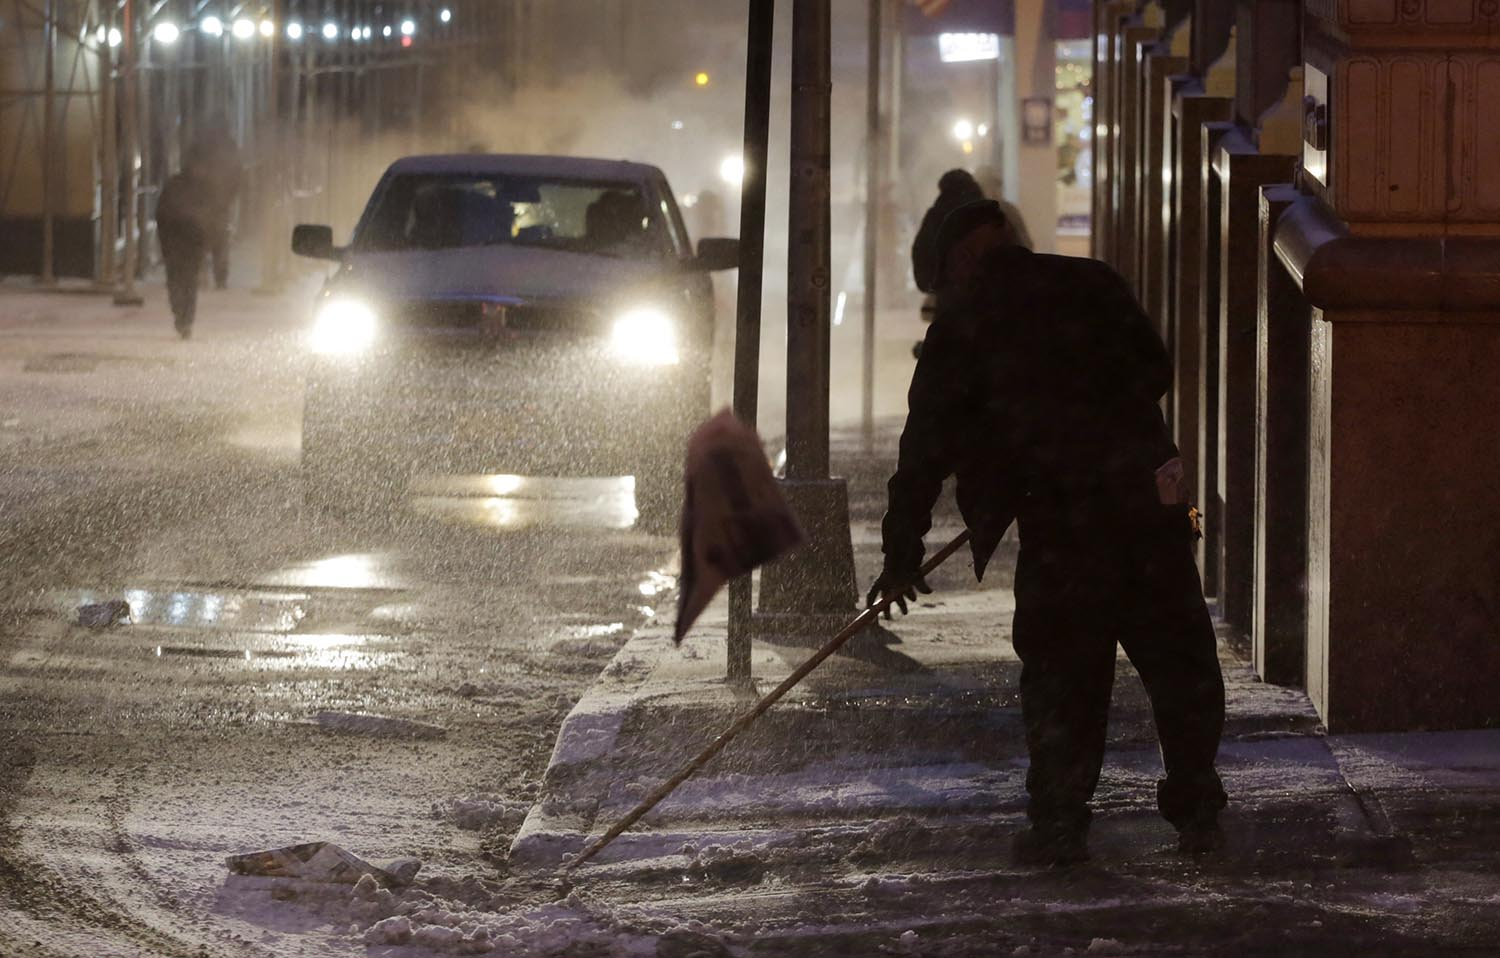 "<div class=""meta image-caption""><div class=""origin-logo origin-image ap""><span>AP</span></div><span class=""caption-text"">A man clears snow from a sidewalk, Thursday, Jan. 4, 2018, in New York. (AP Photo/Mark Lennihan)</span></div>"